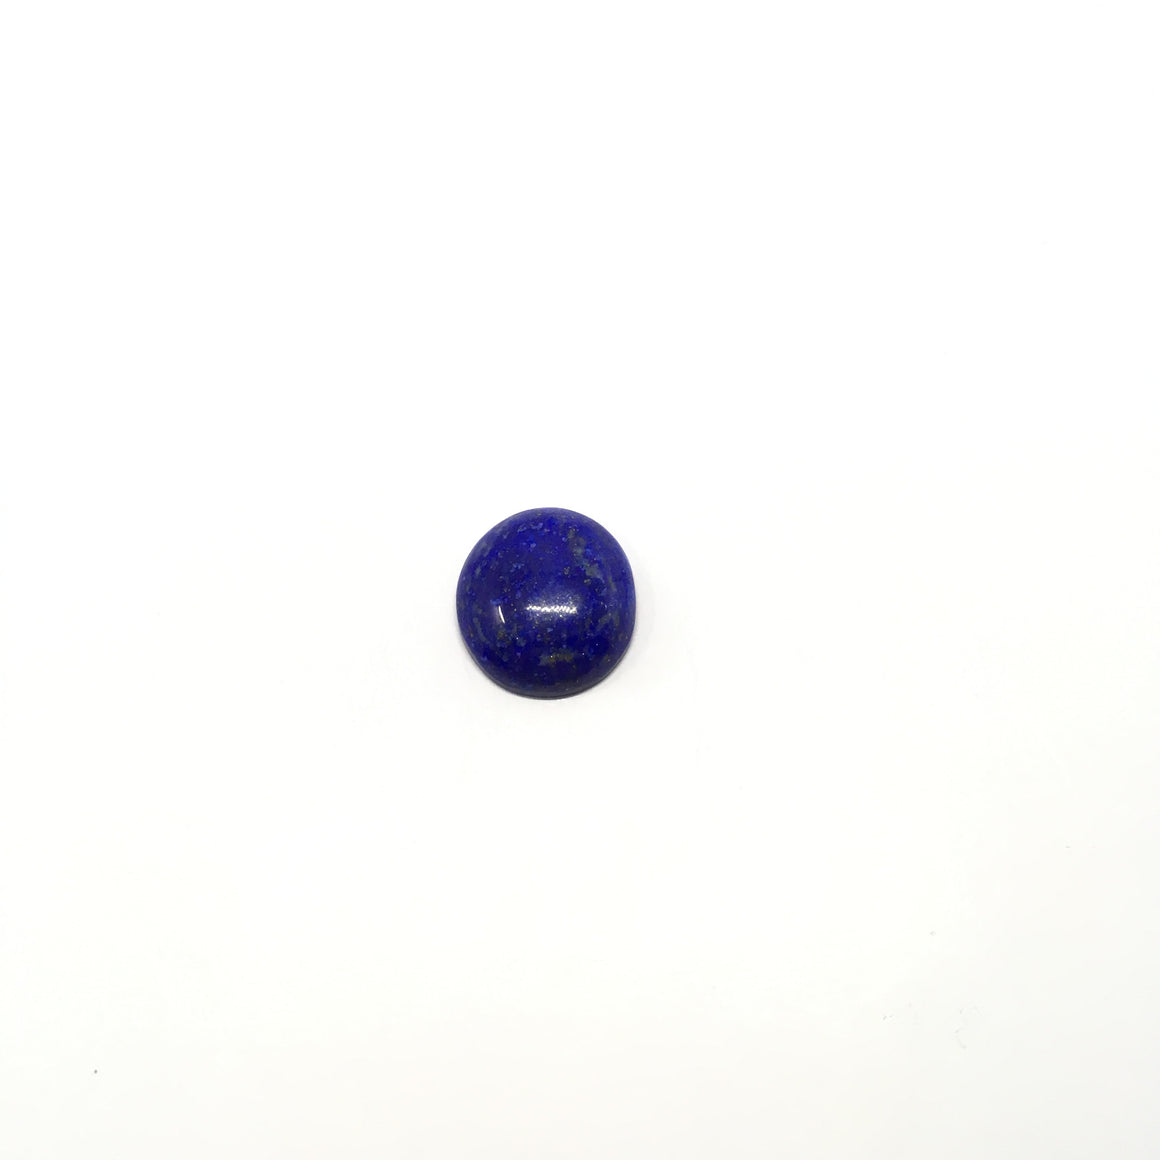 Lapis Lazuli Cabochon - Lapis Cabochon For Ring Oval Cut - 23.80 Carat